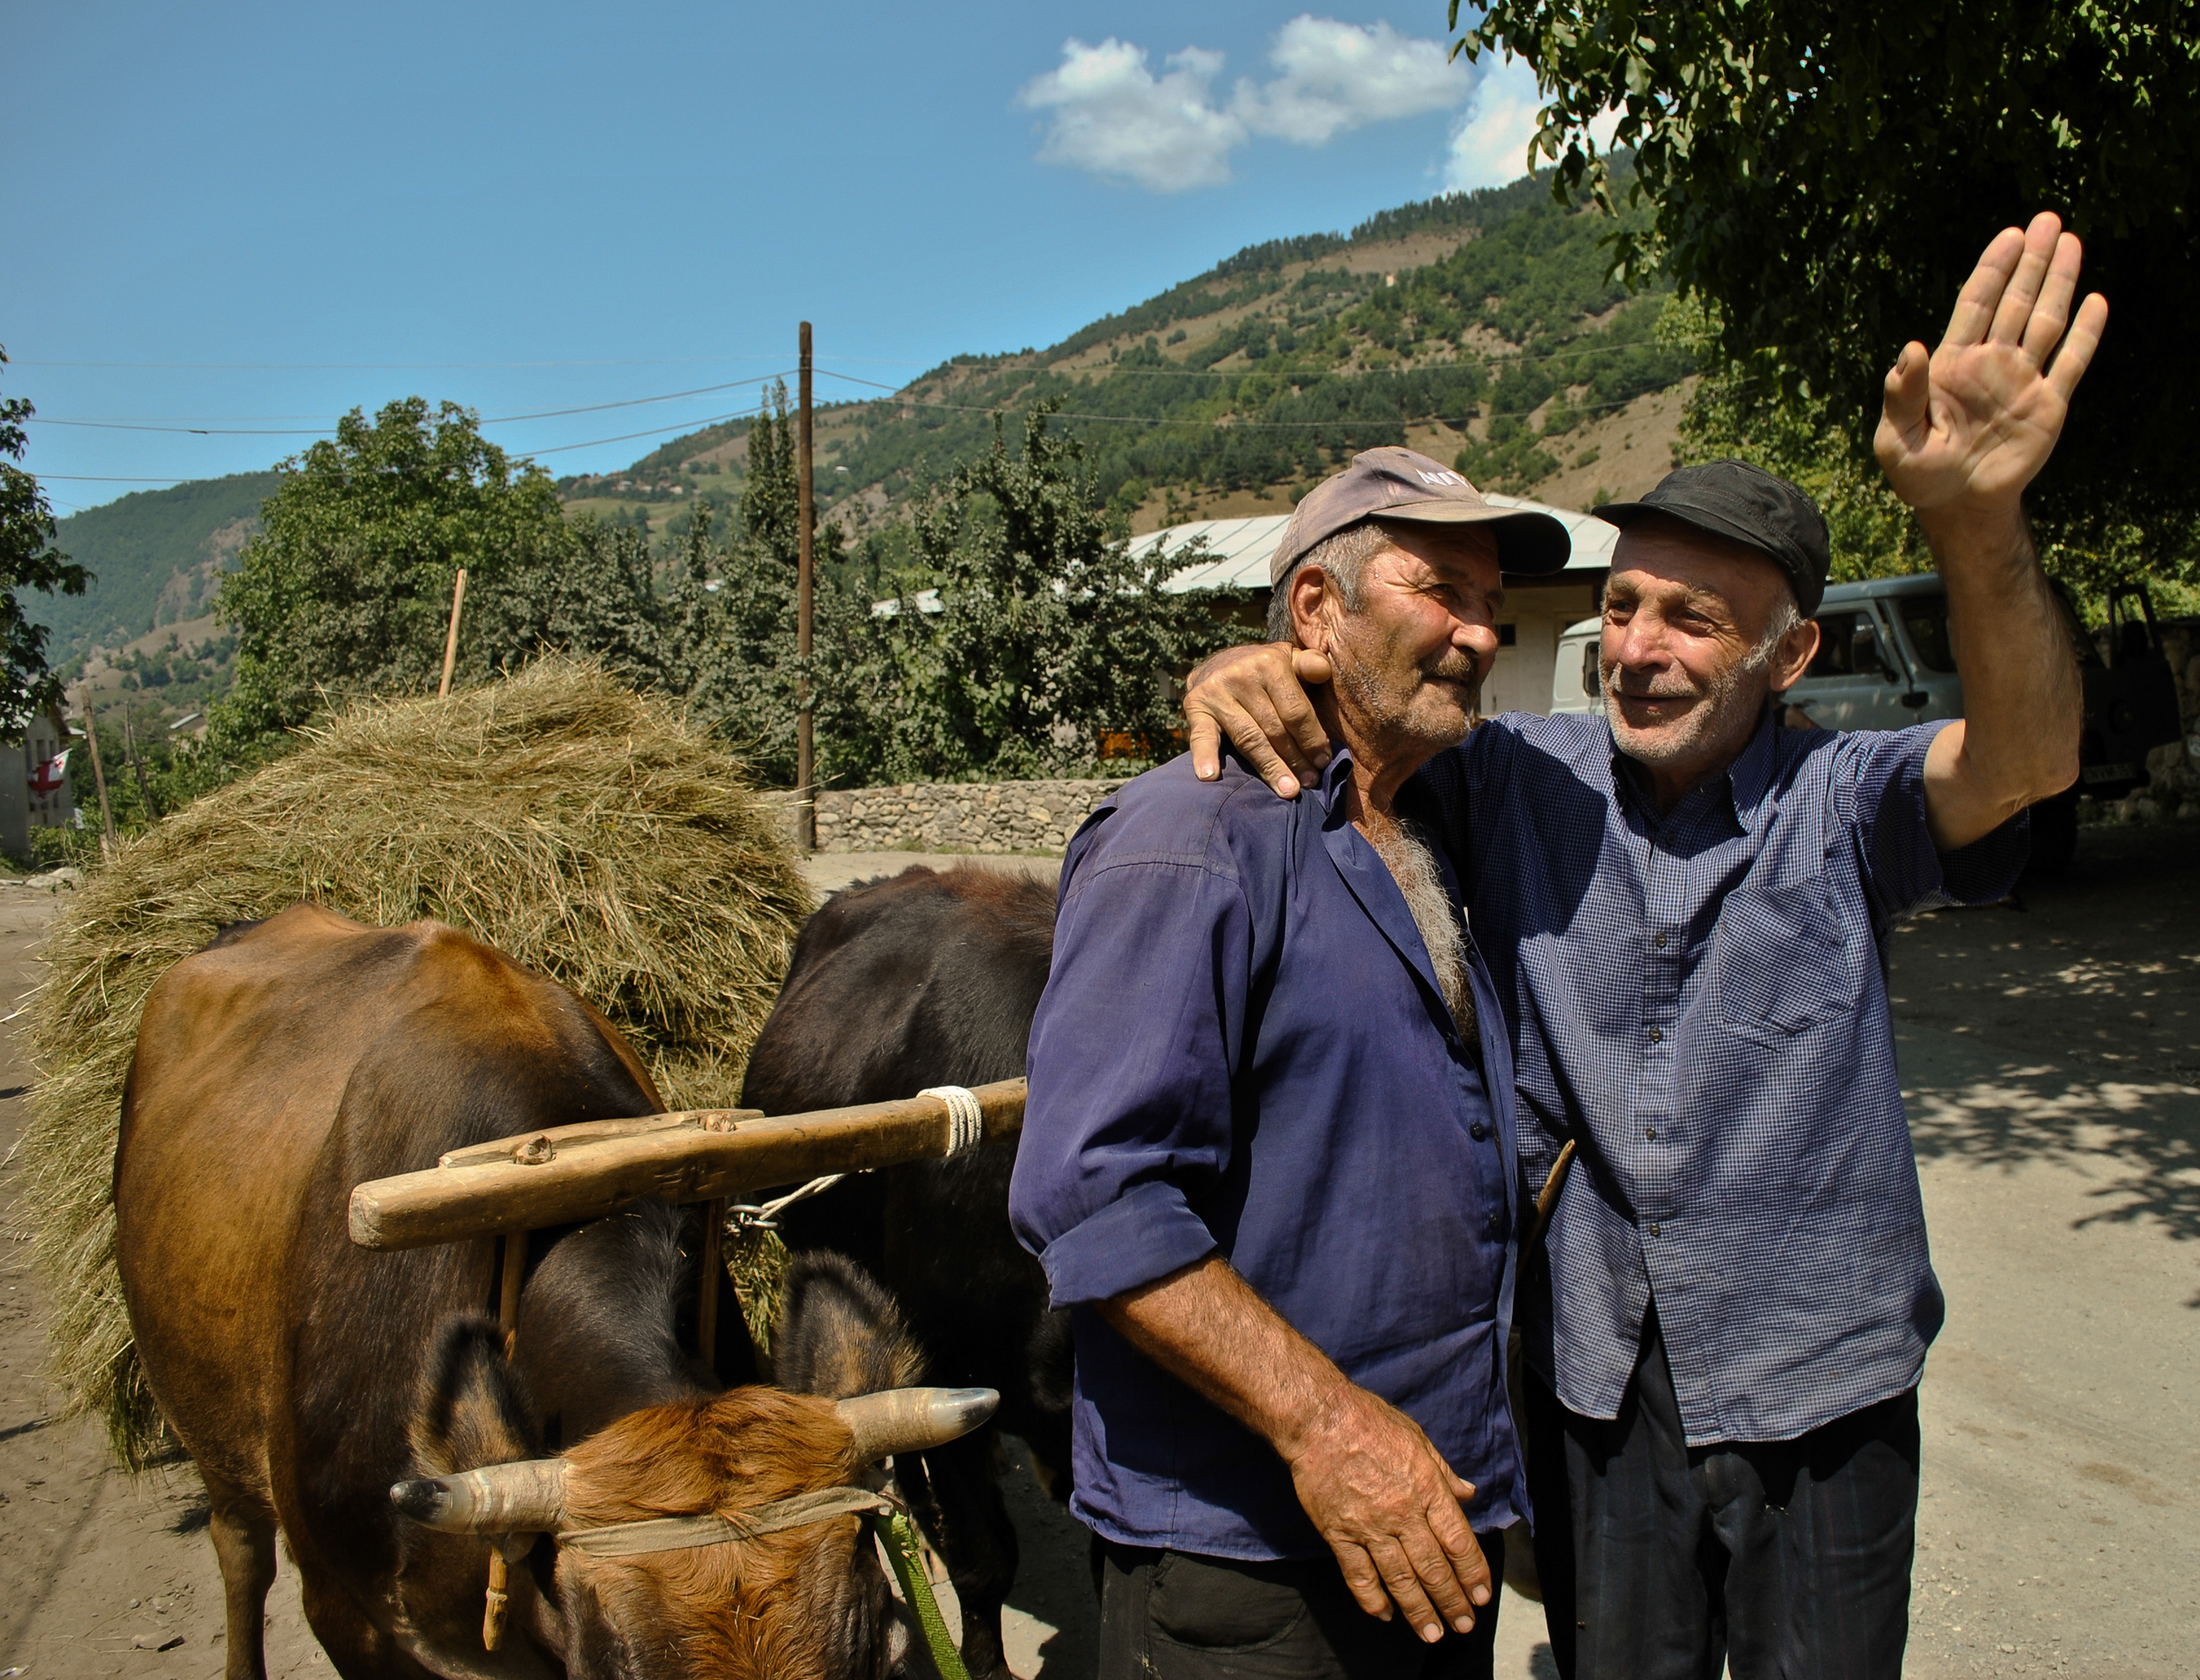 Villagers from Georgia's Svaneti region, one of the most isolated parts of the country.